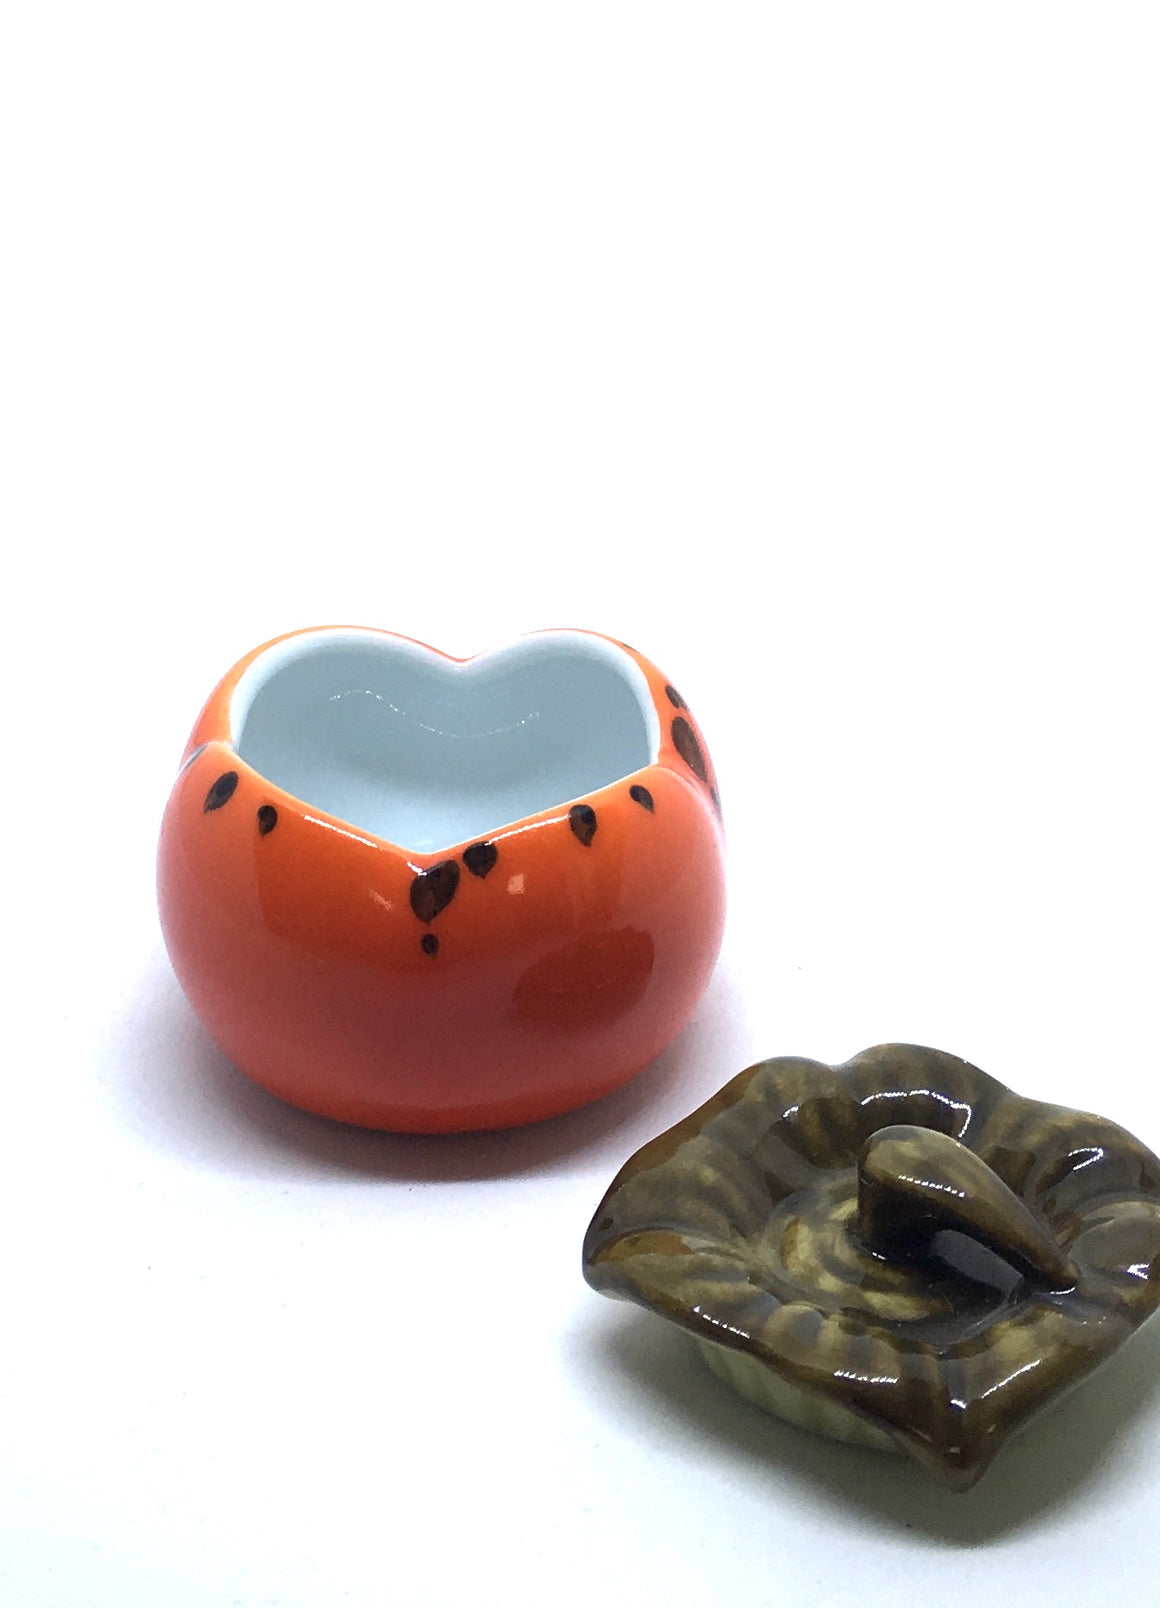 Find this super sweet Japanese persimmon dish from Kyoto at Zenbu Home